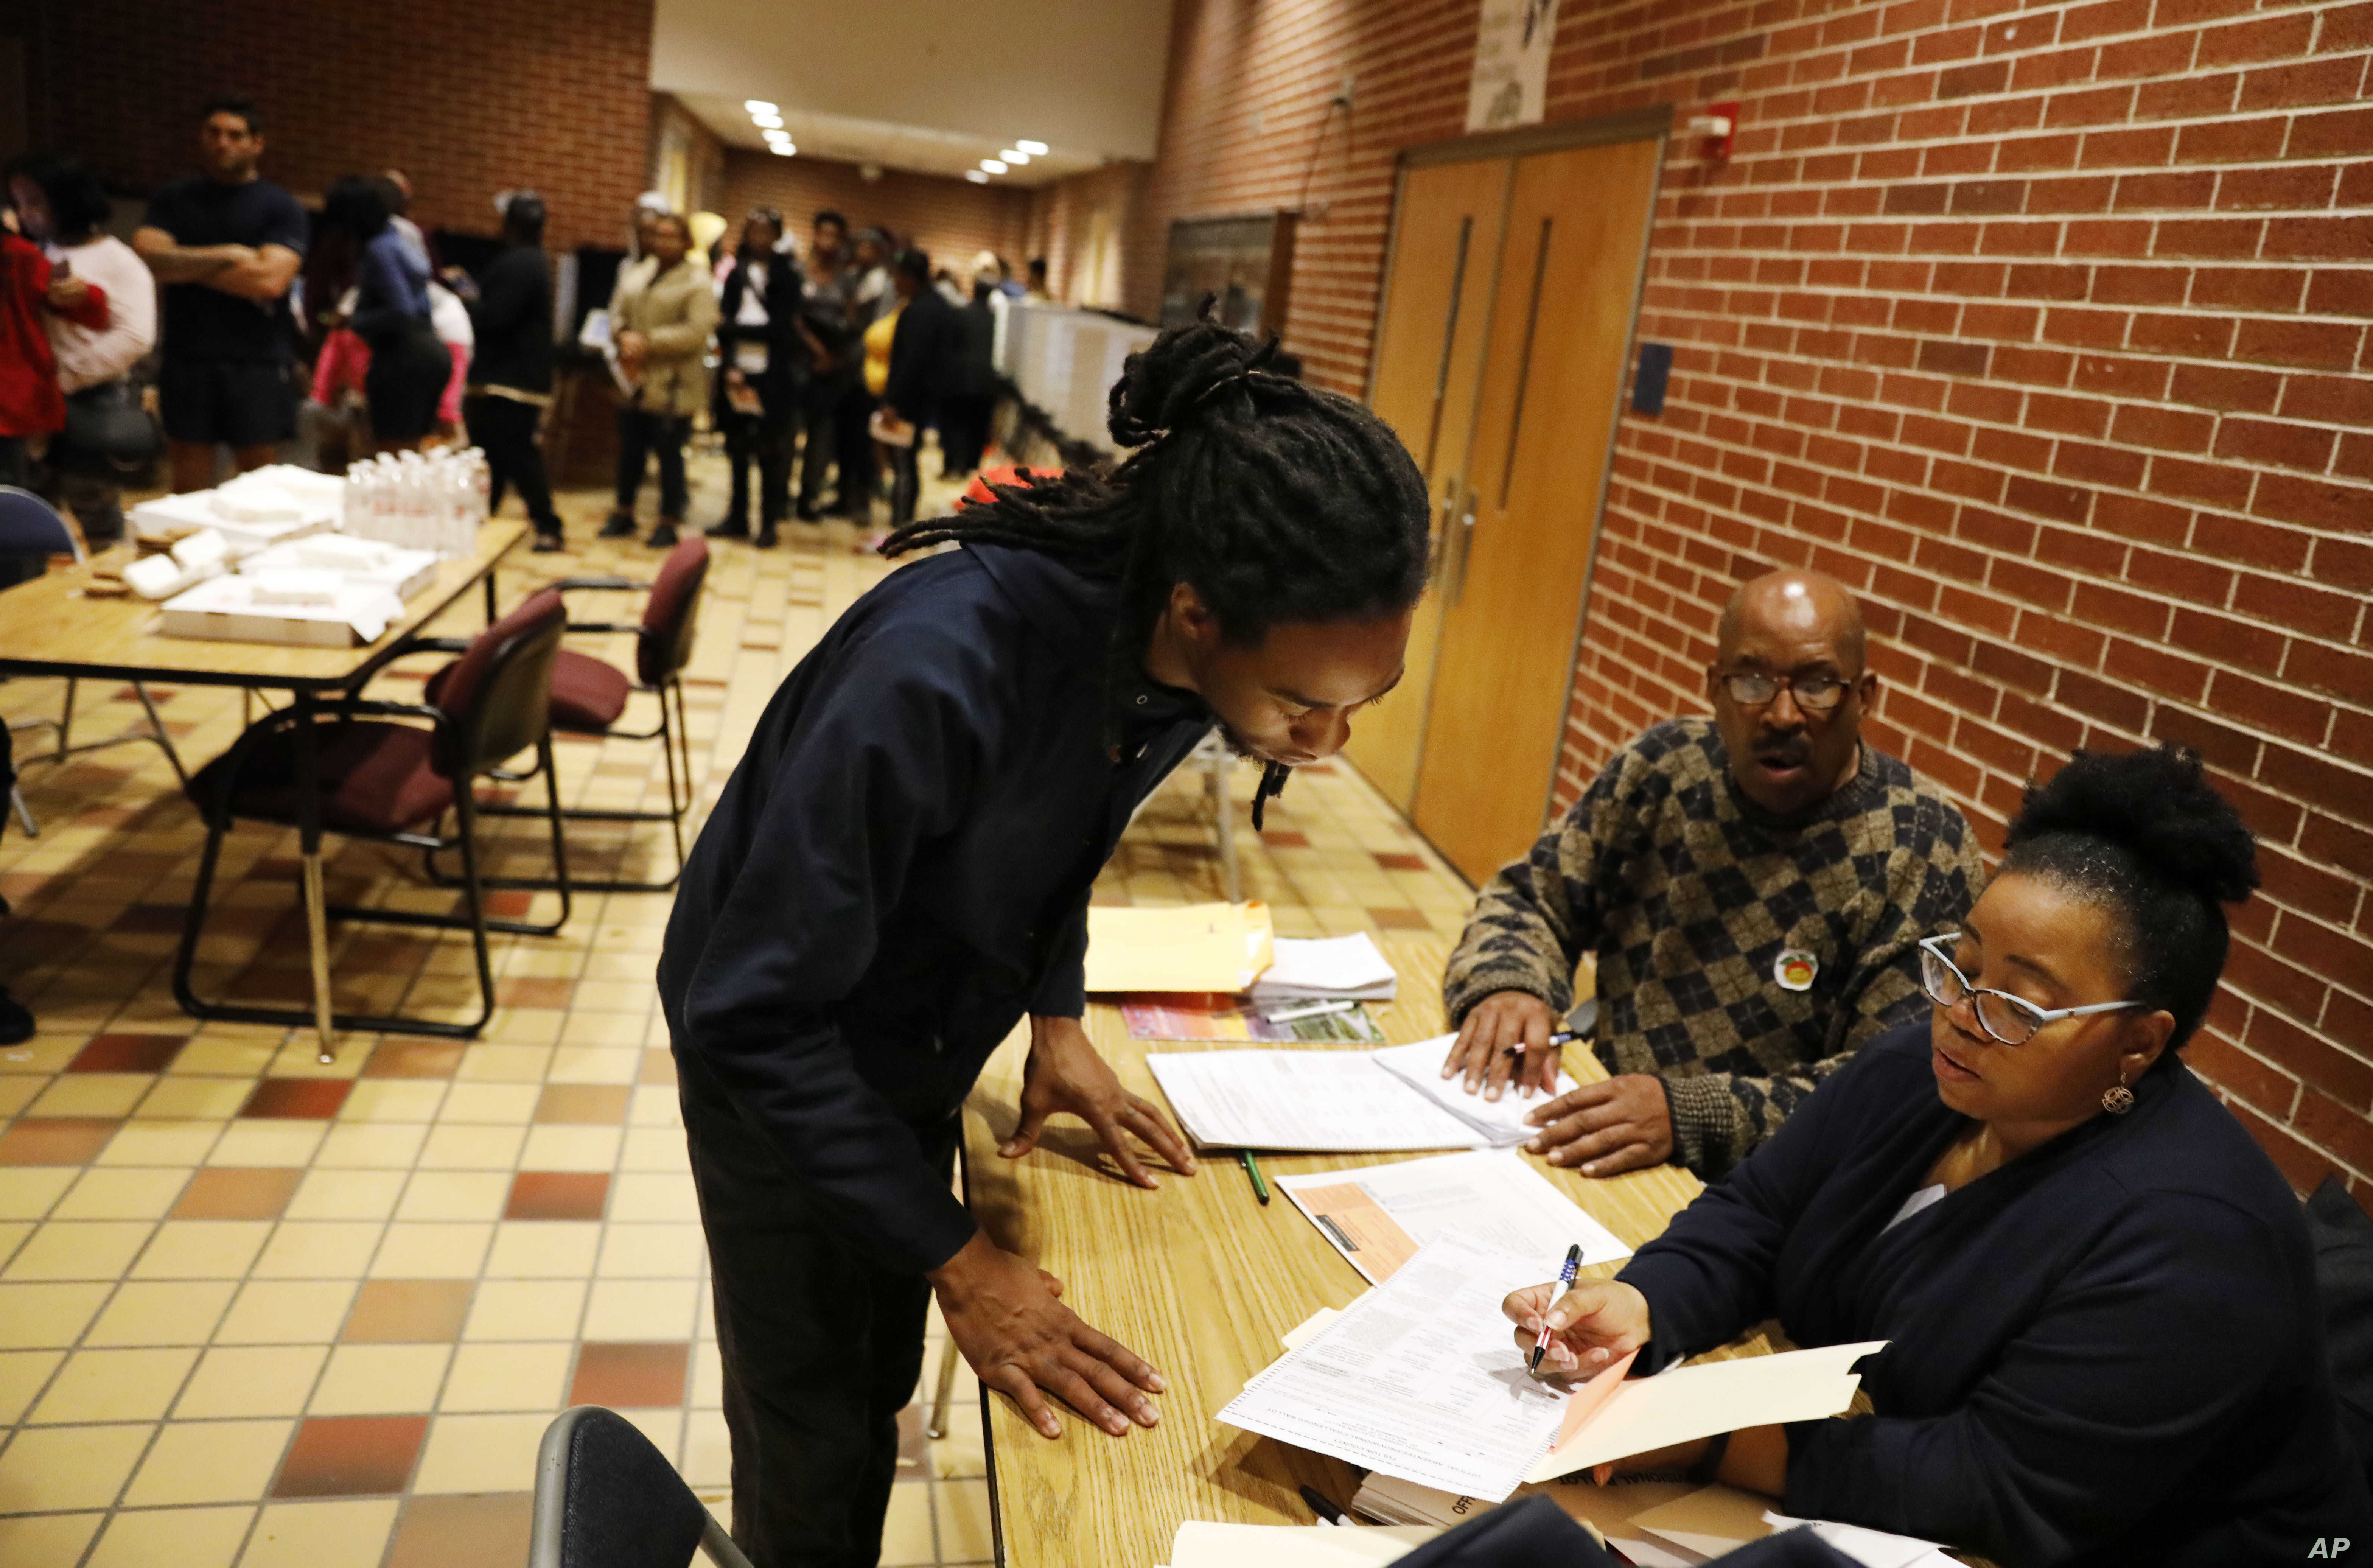 Sebastian Snelling, left, is given instructions on using a paper ballot as the precinct switched over from electronic voting machines after a judge ordered the location to stay open until 10 p.m., in Atlanta, on Nov. 6, 2018.